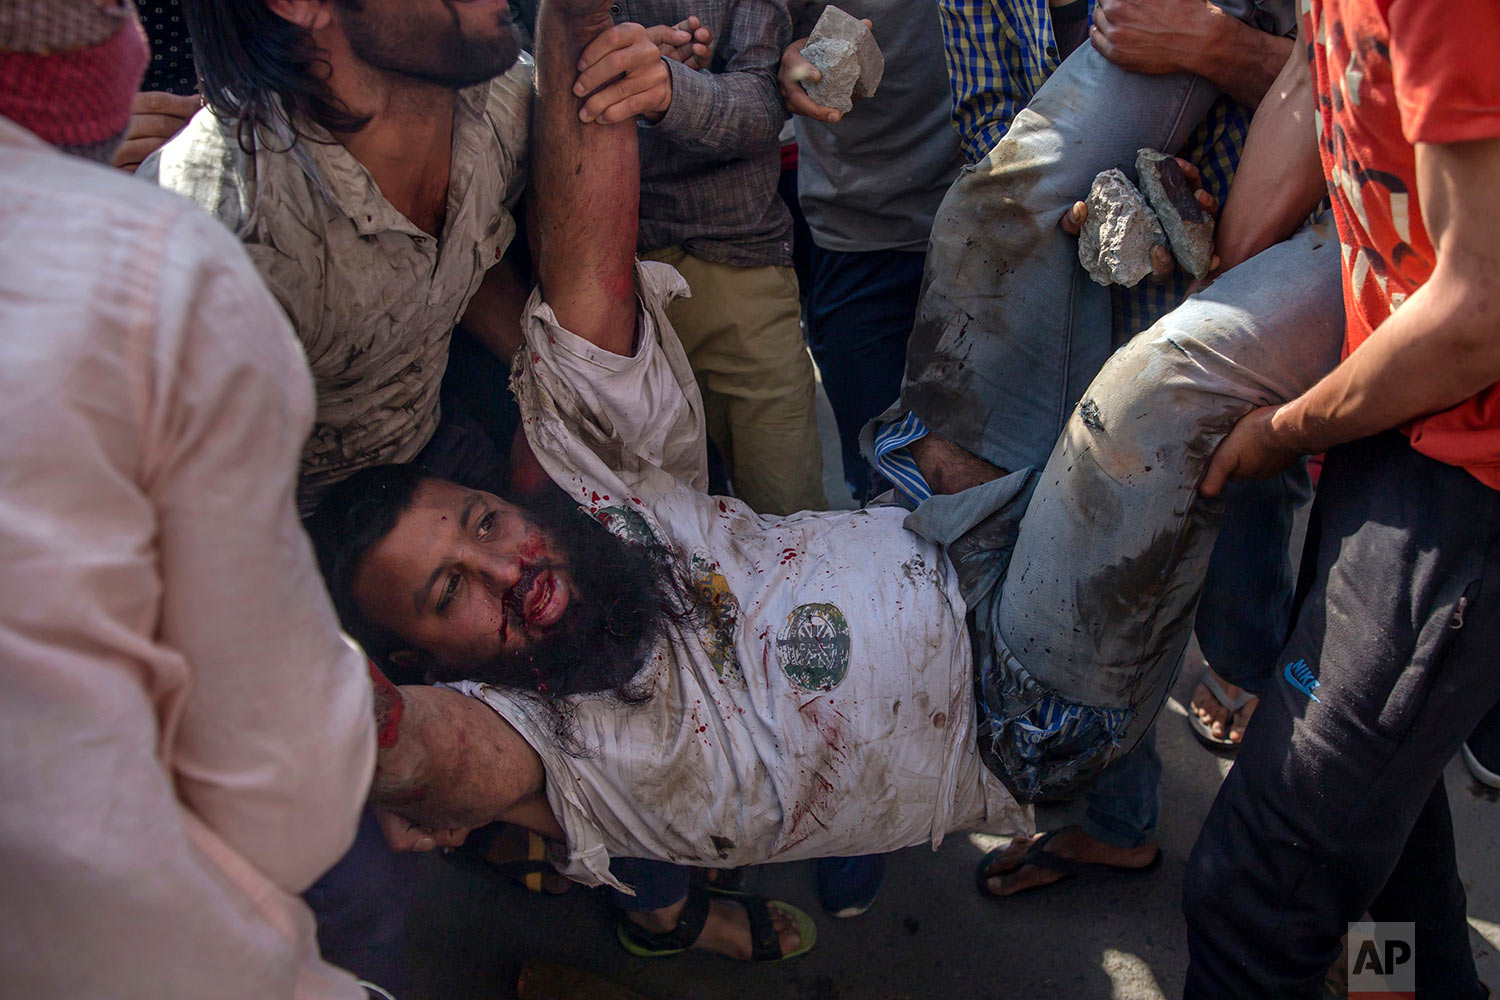 Kashmiri protesters tend to an injured man after a paramilitary vehicle ran over him during a protest in Srinagar, Indian controlled Kashmir, Friday, June 1, 2018.  (AP Photo/Dar Yasin)